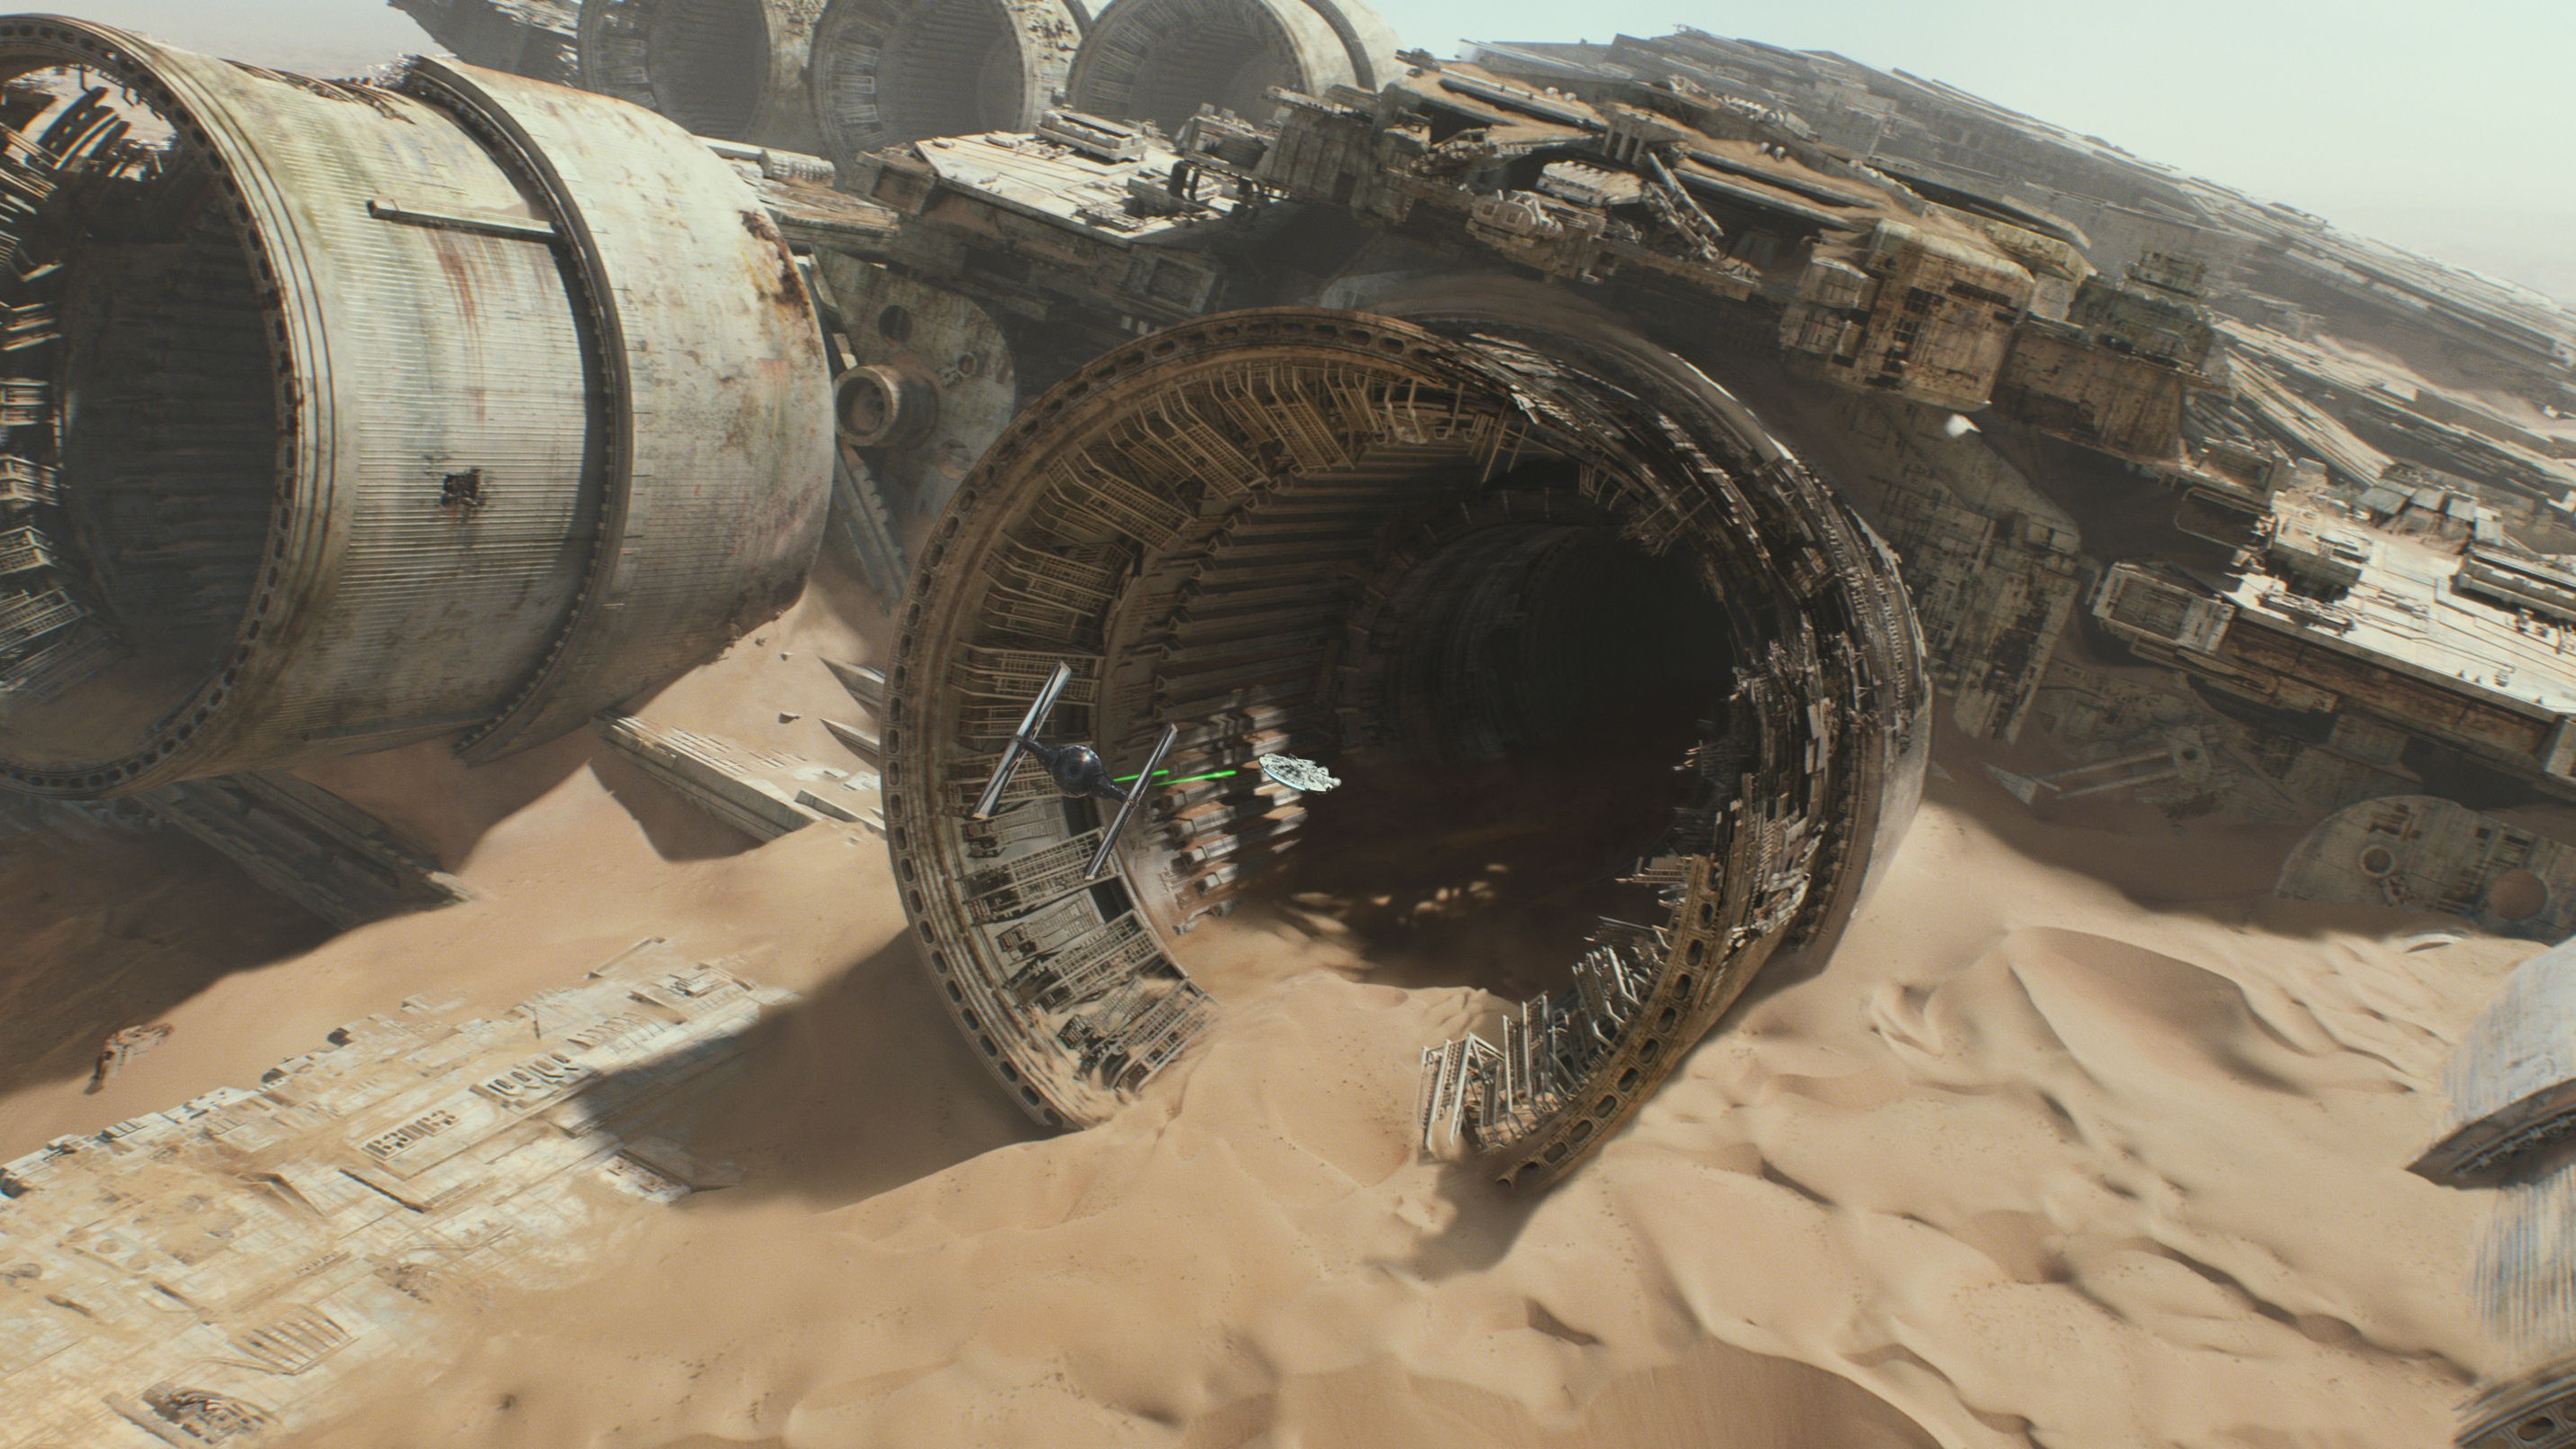 'The Force Awakens' Makes Star Wars Mystical Again